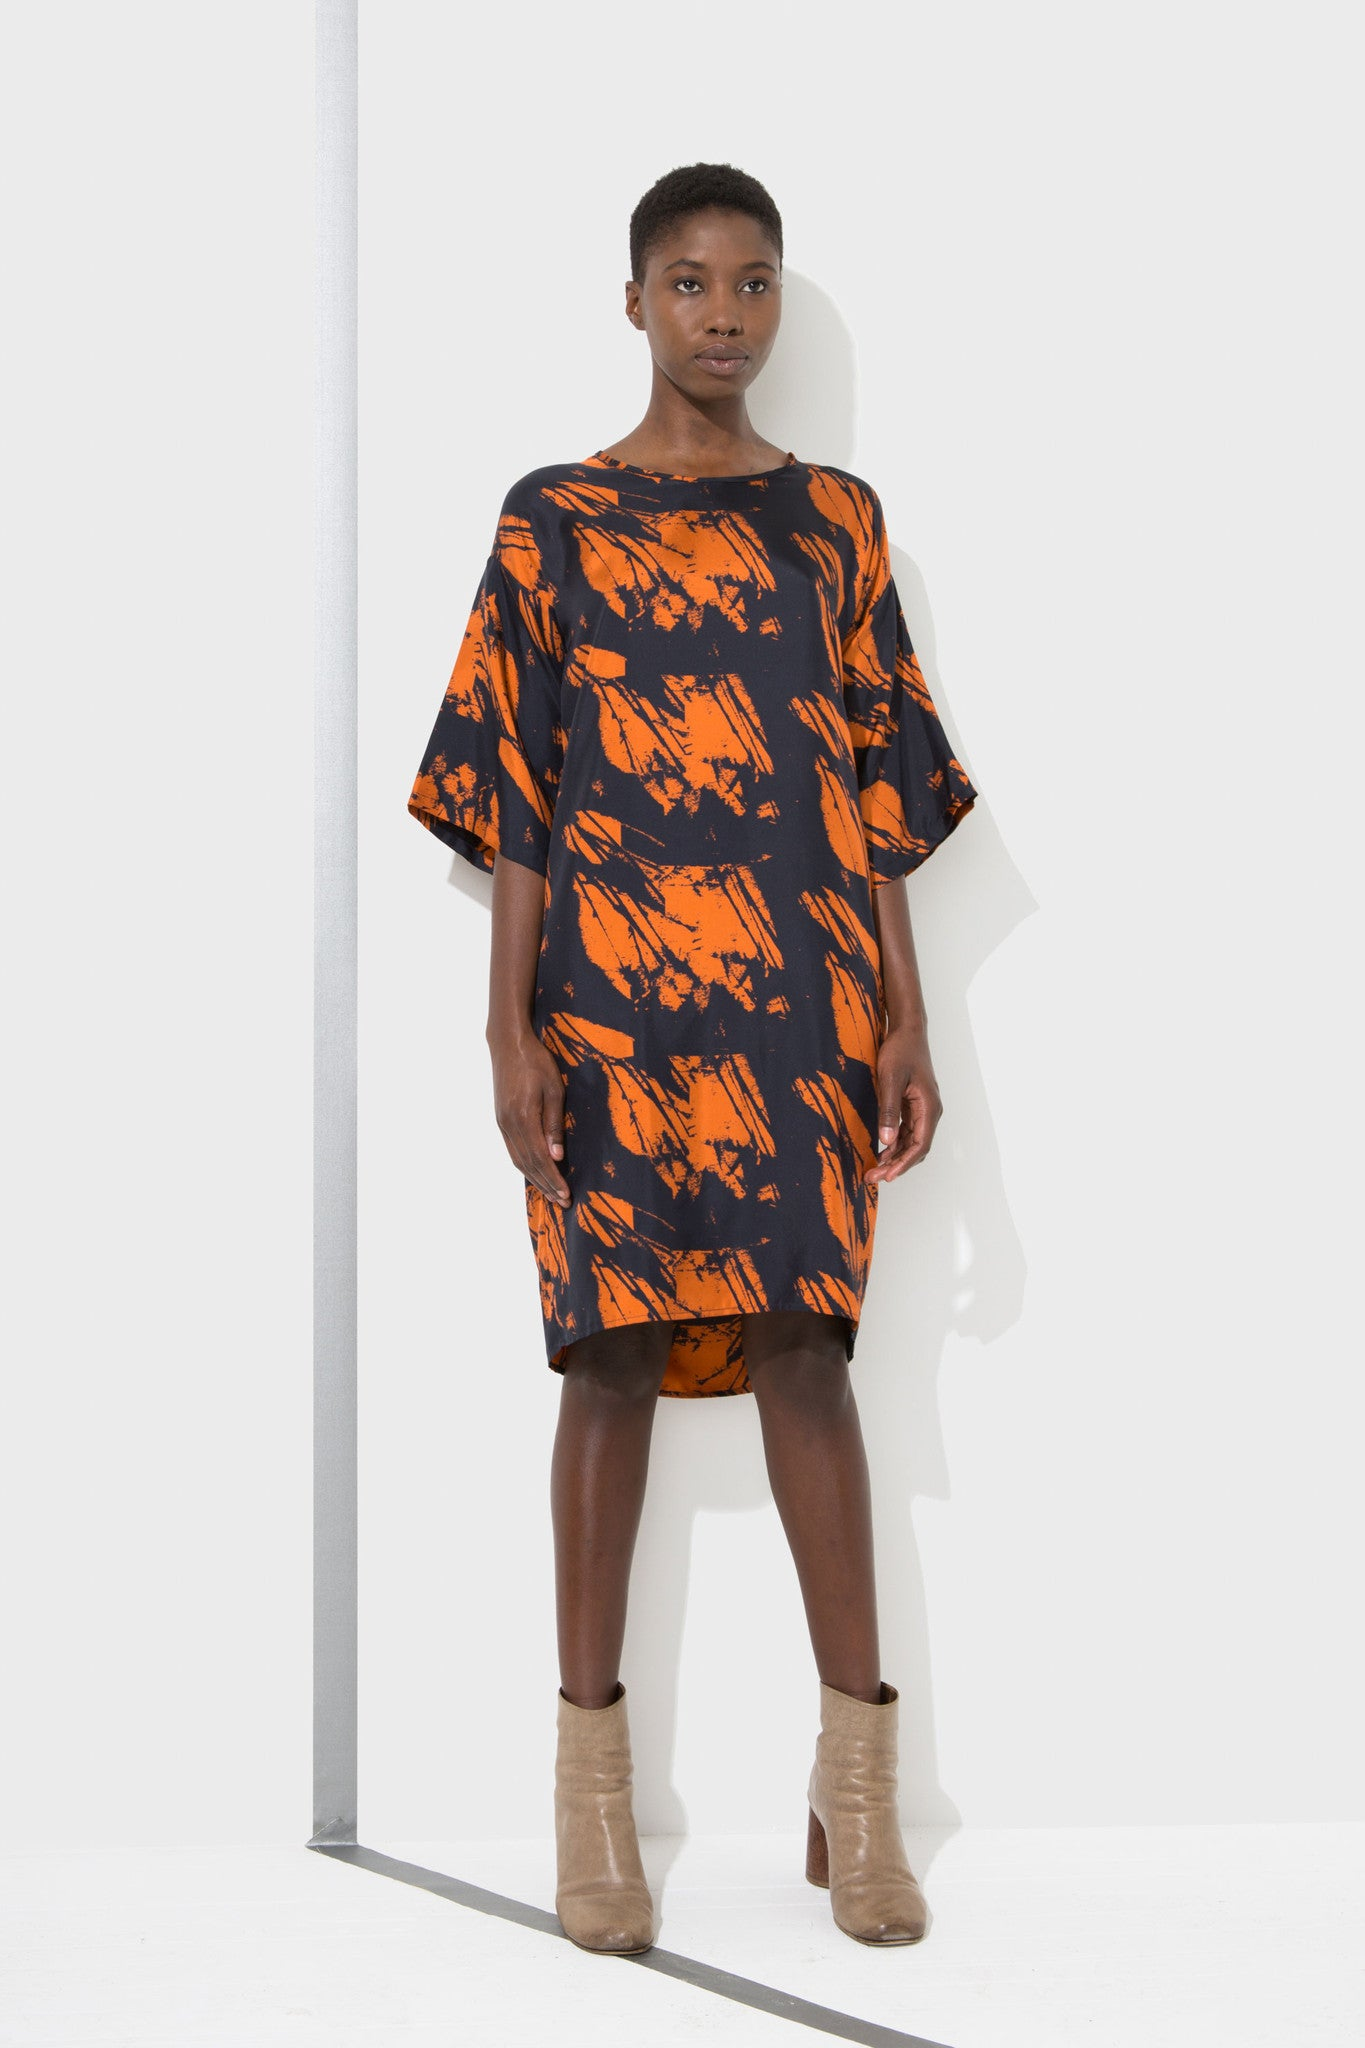 Alex dress with boxy shape designed by H. Fredricksson